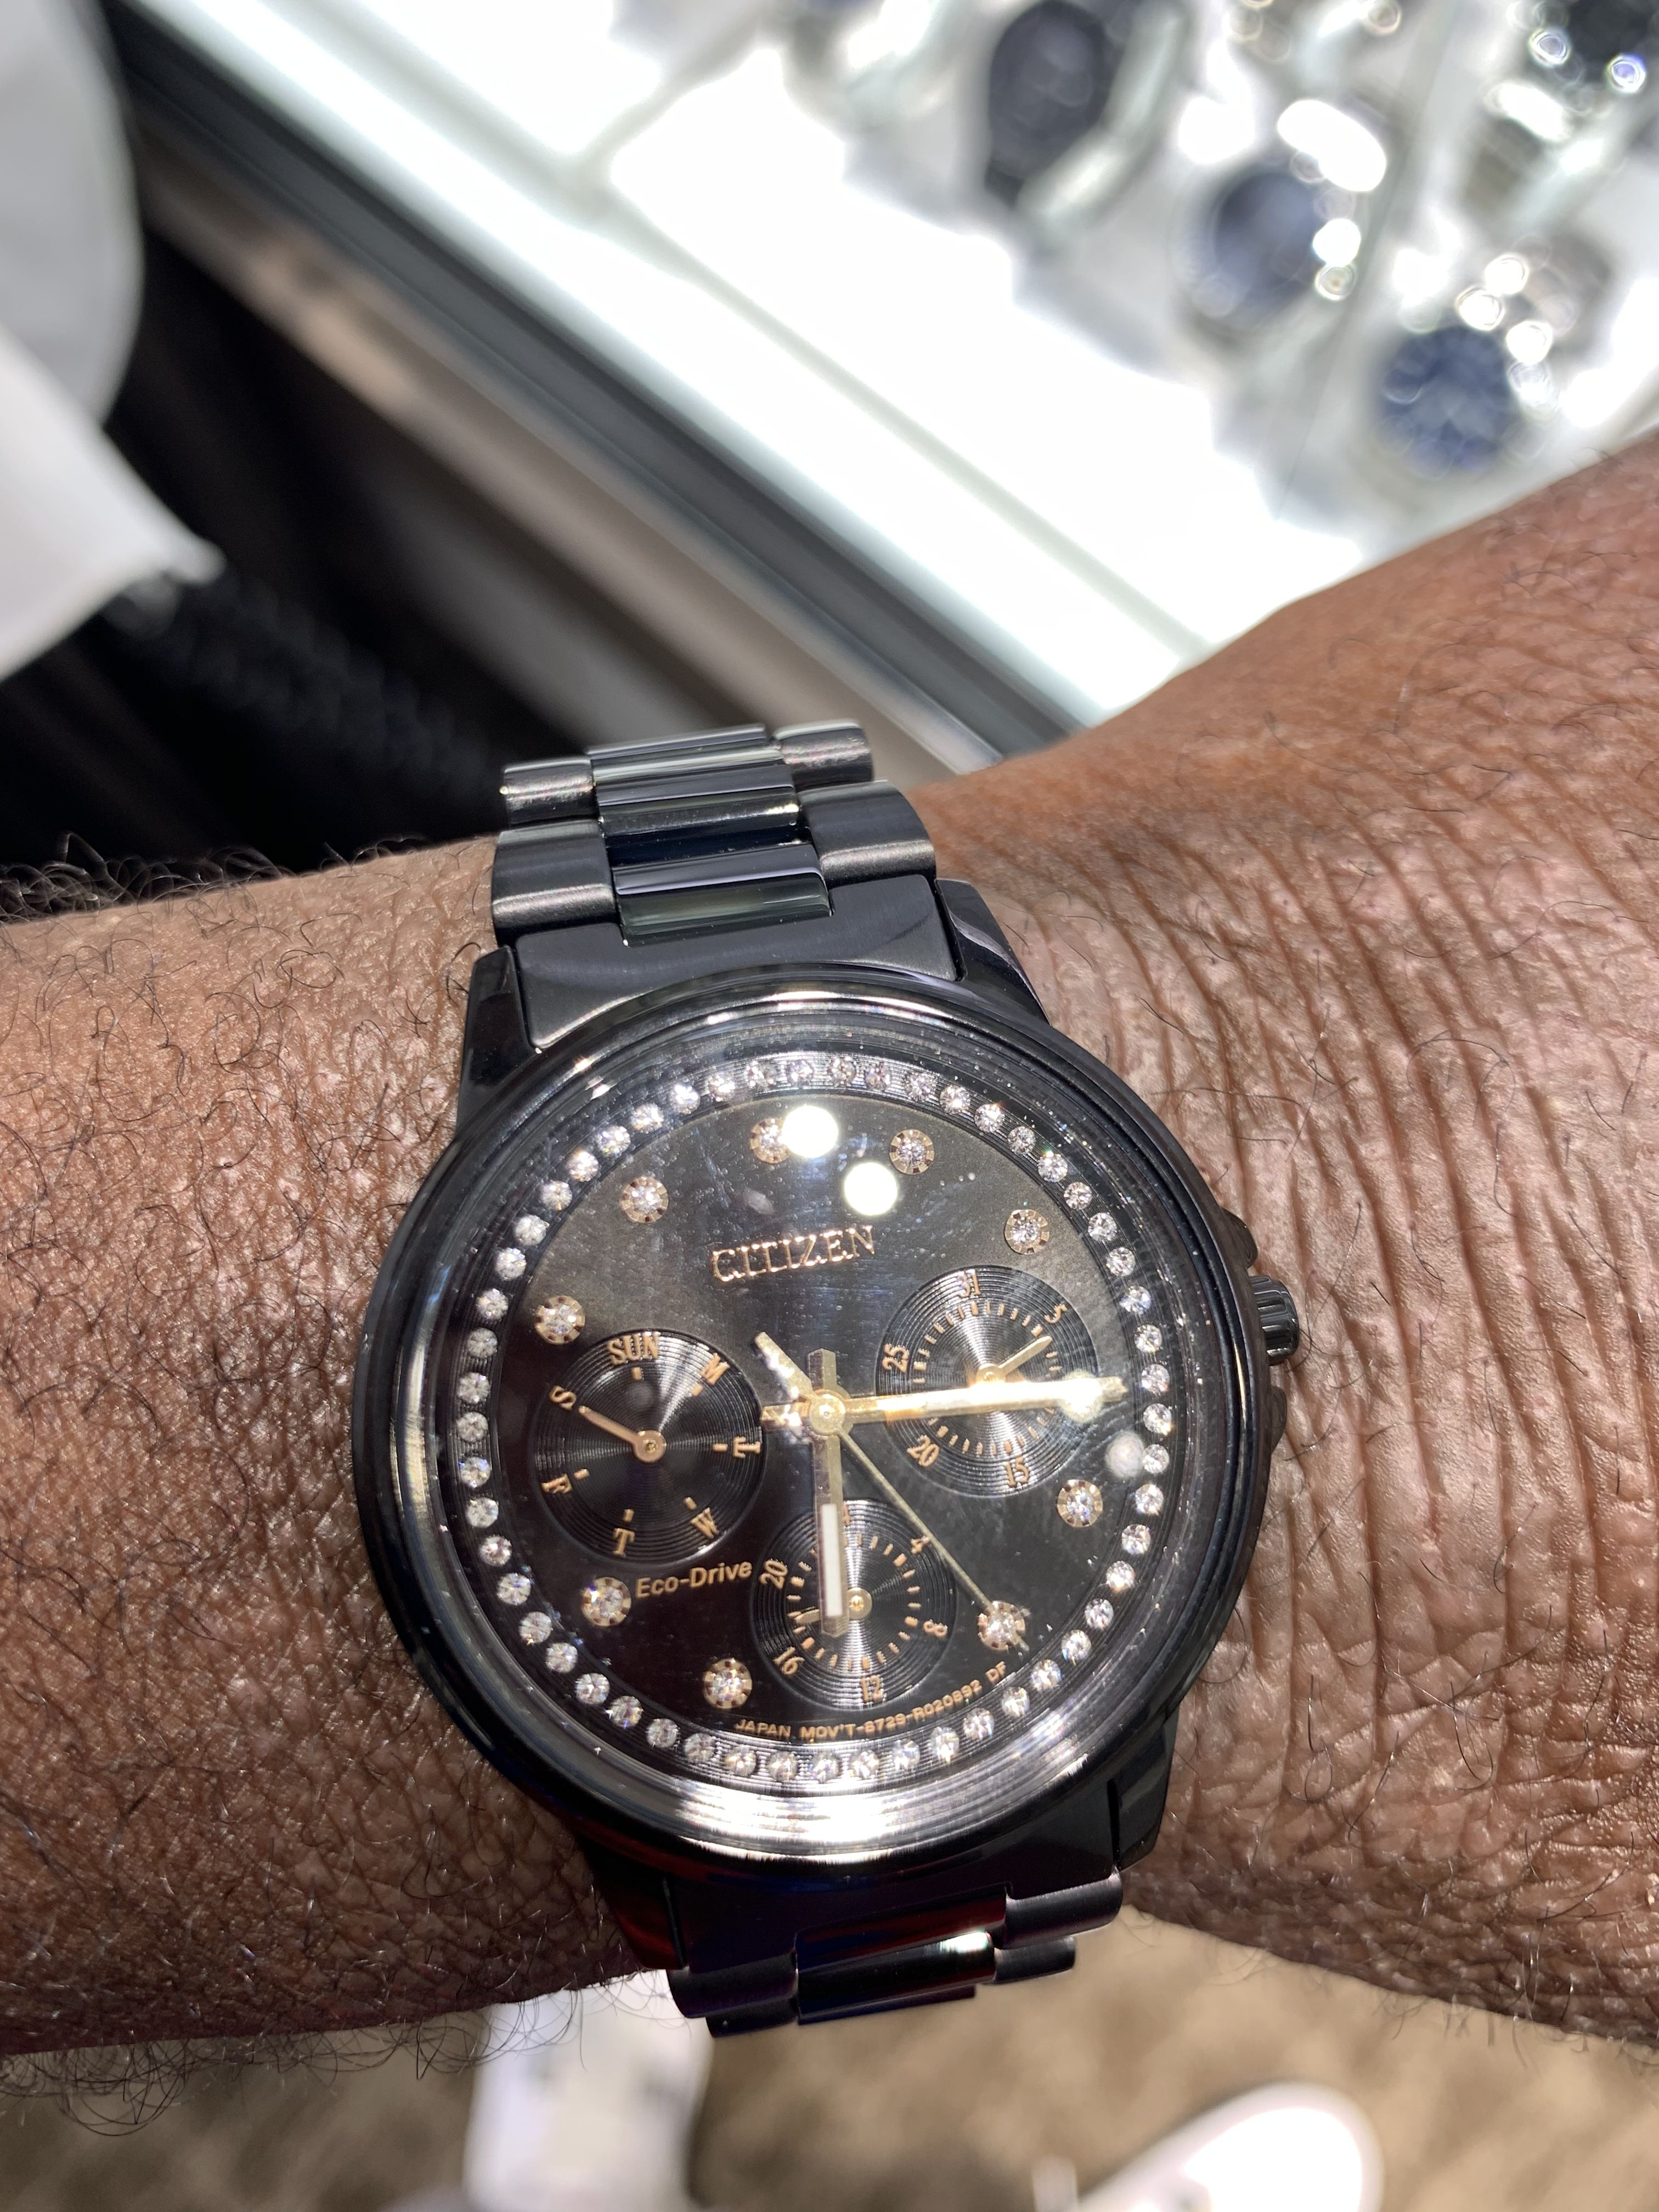 Pin by Clayton Reed on Vision board Rolex watches, Rolex